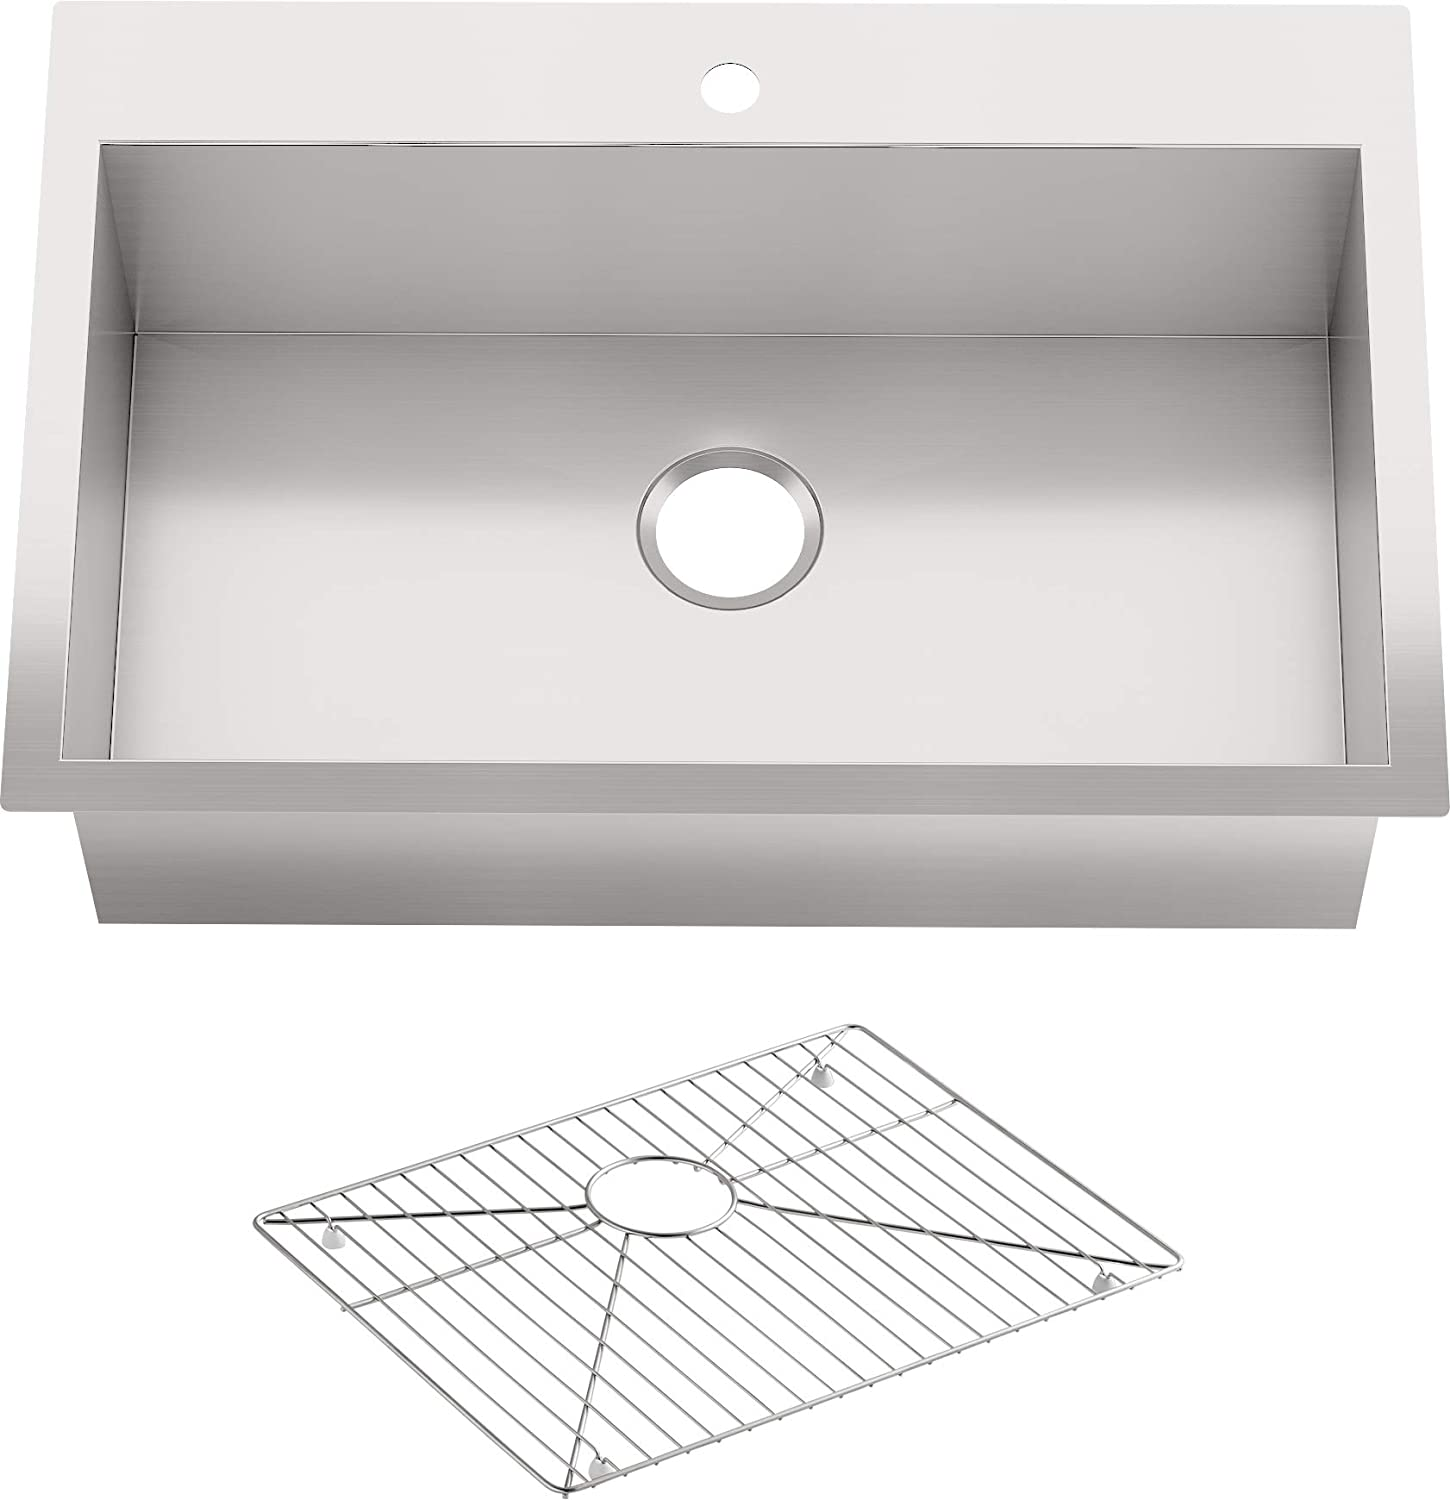 Kohler Vault 33 Single Bowl 18 Gauge Stainless Steel Kitchen Sink With Single Faucet Hole K 3821 1 Na Drop In Or Undermount Installation 9 Inch Bowl Single Bowl Sinks Amazon Com